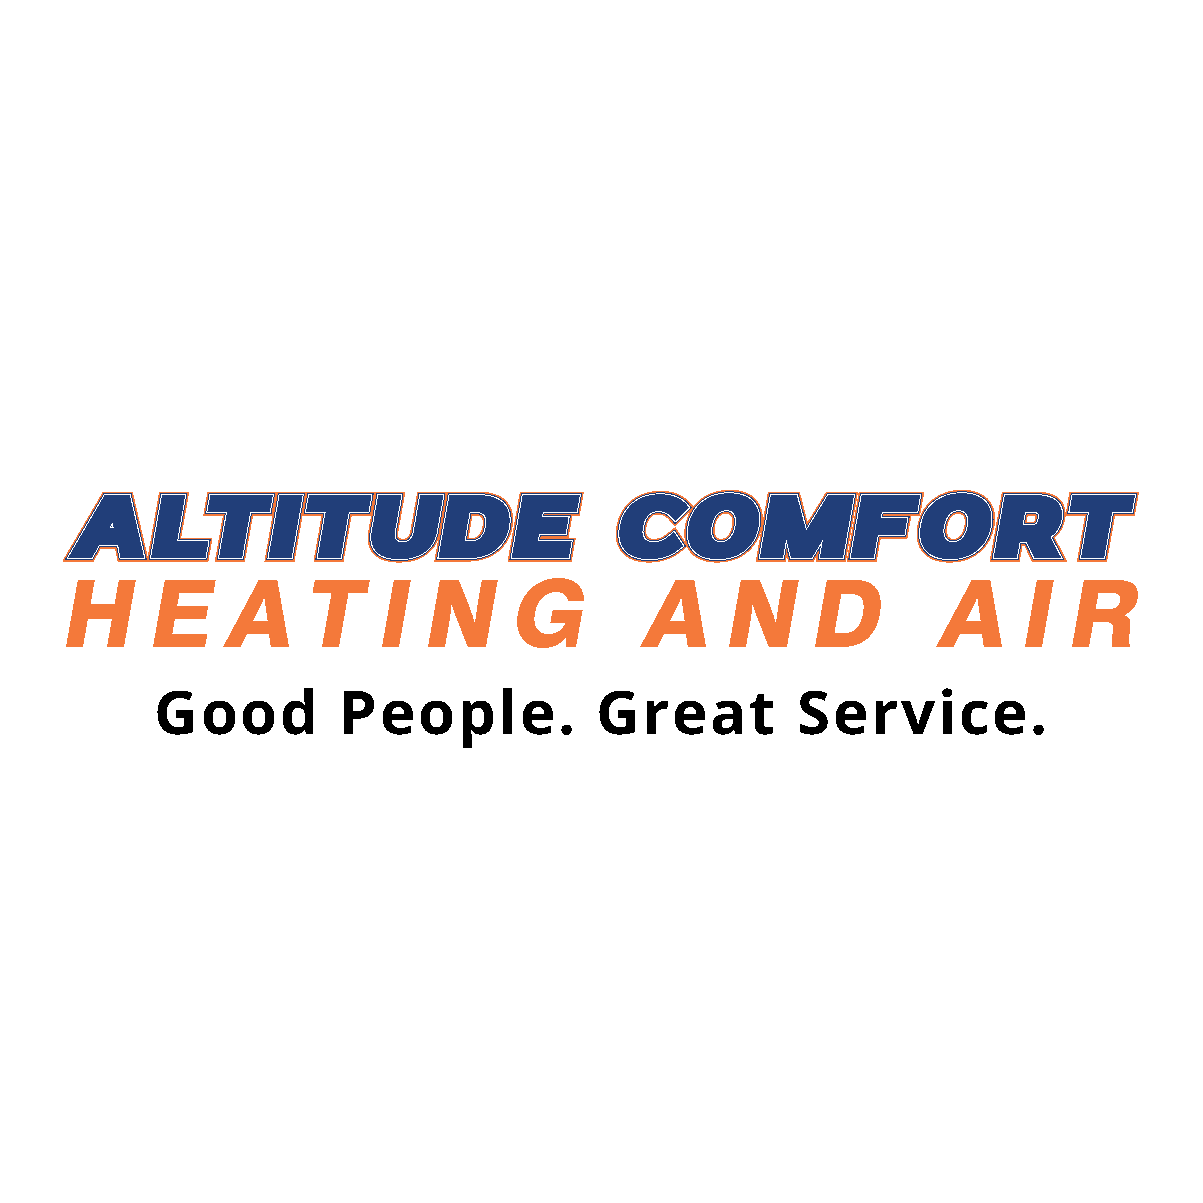 used air about toronto us heating industry comforter cooling inc and change entire ventilation contractors in are established quality installation consumers the furnace is ways to comfort conditioning